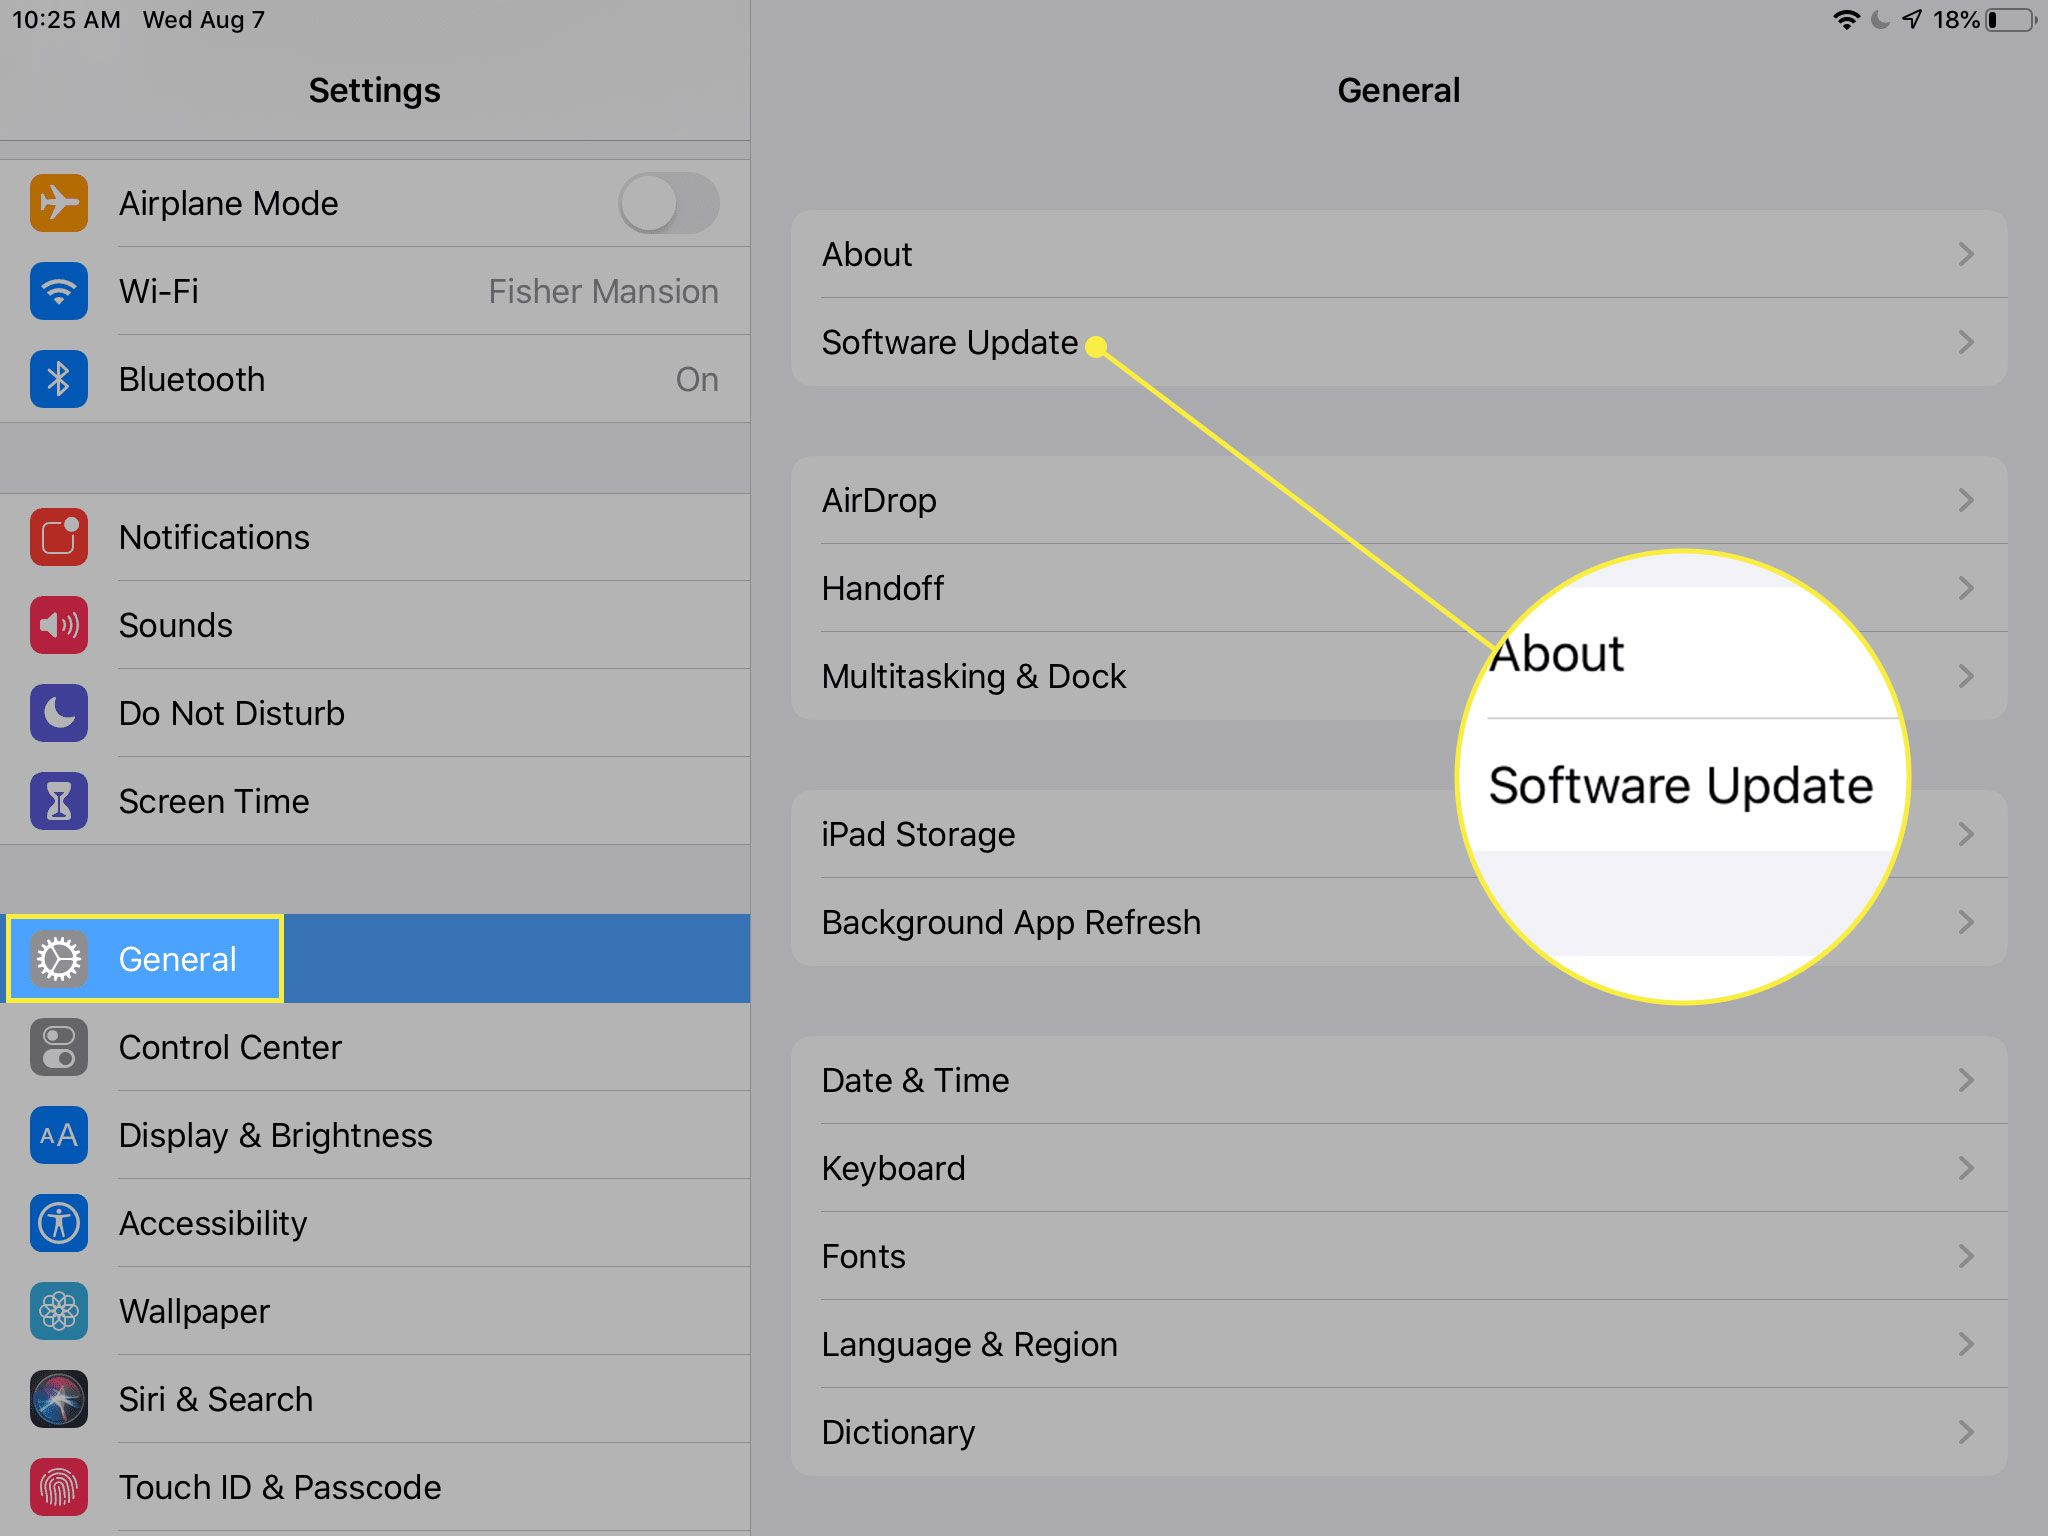 A screenshot of iPad settings with the General heading and Software Update option highlighted